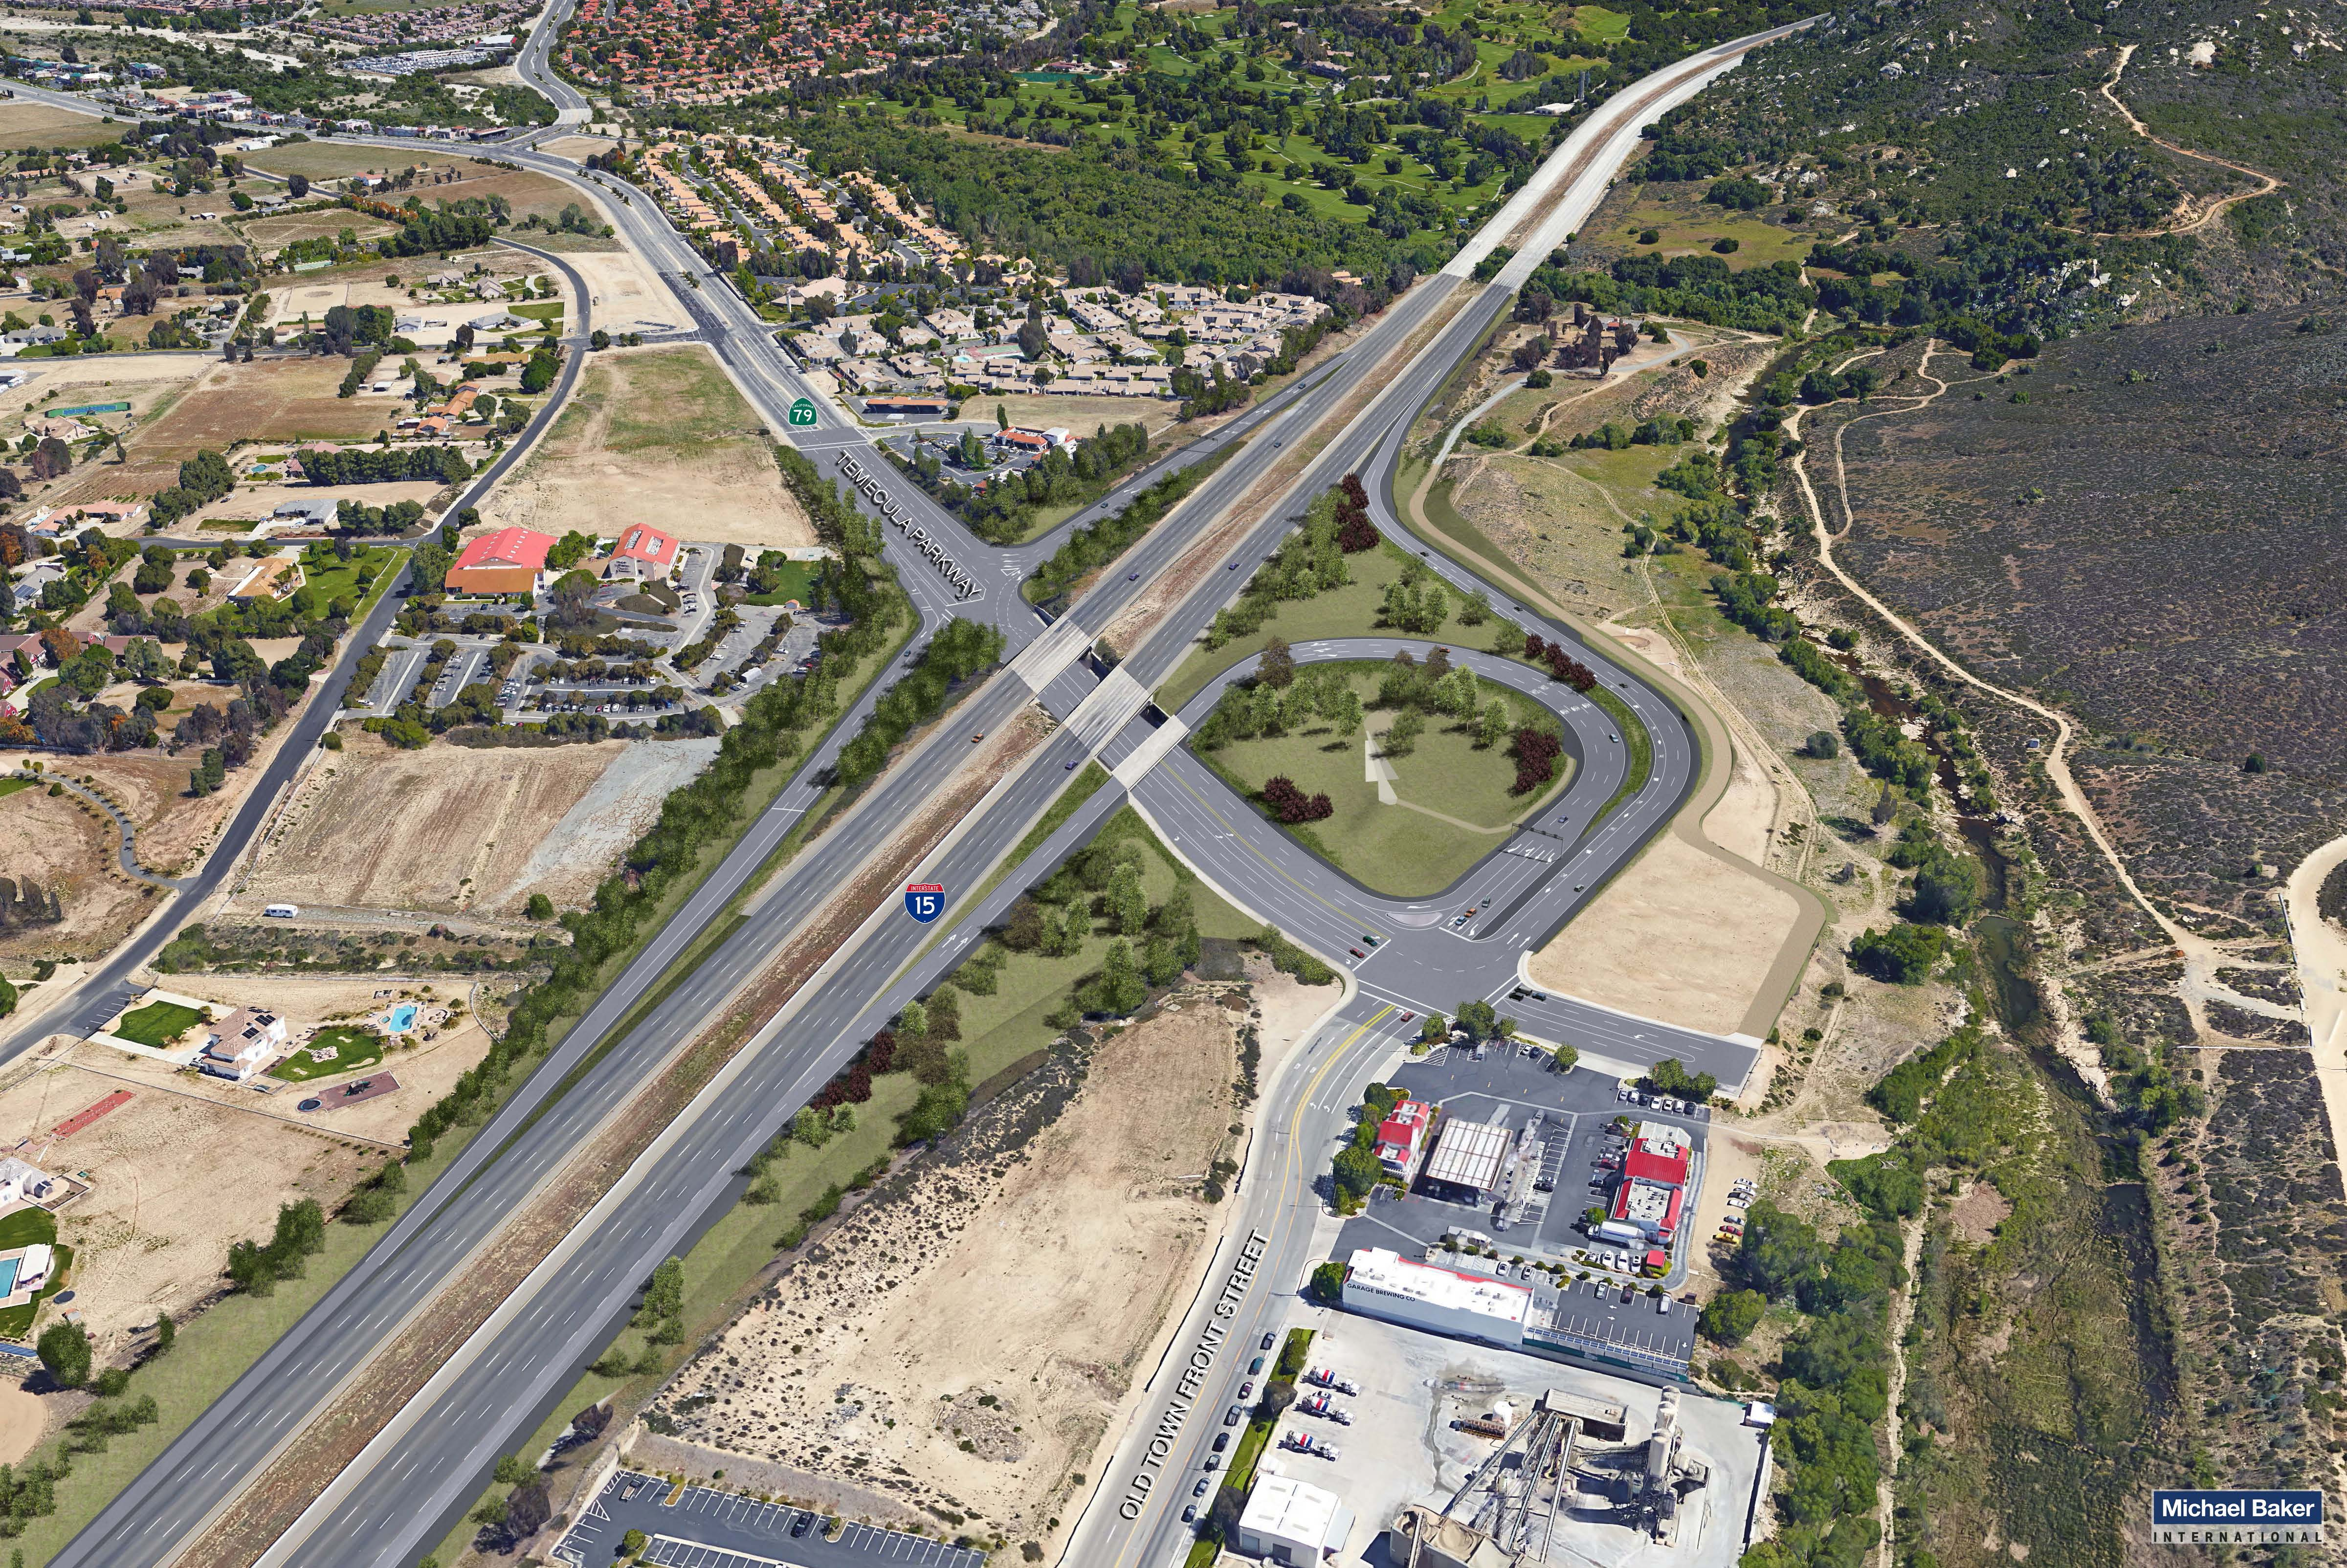 Interstate 15/State Route 79 South Ultimate Interchange